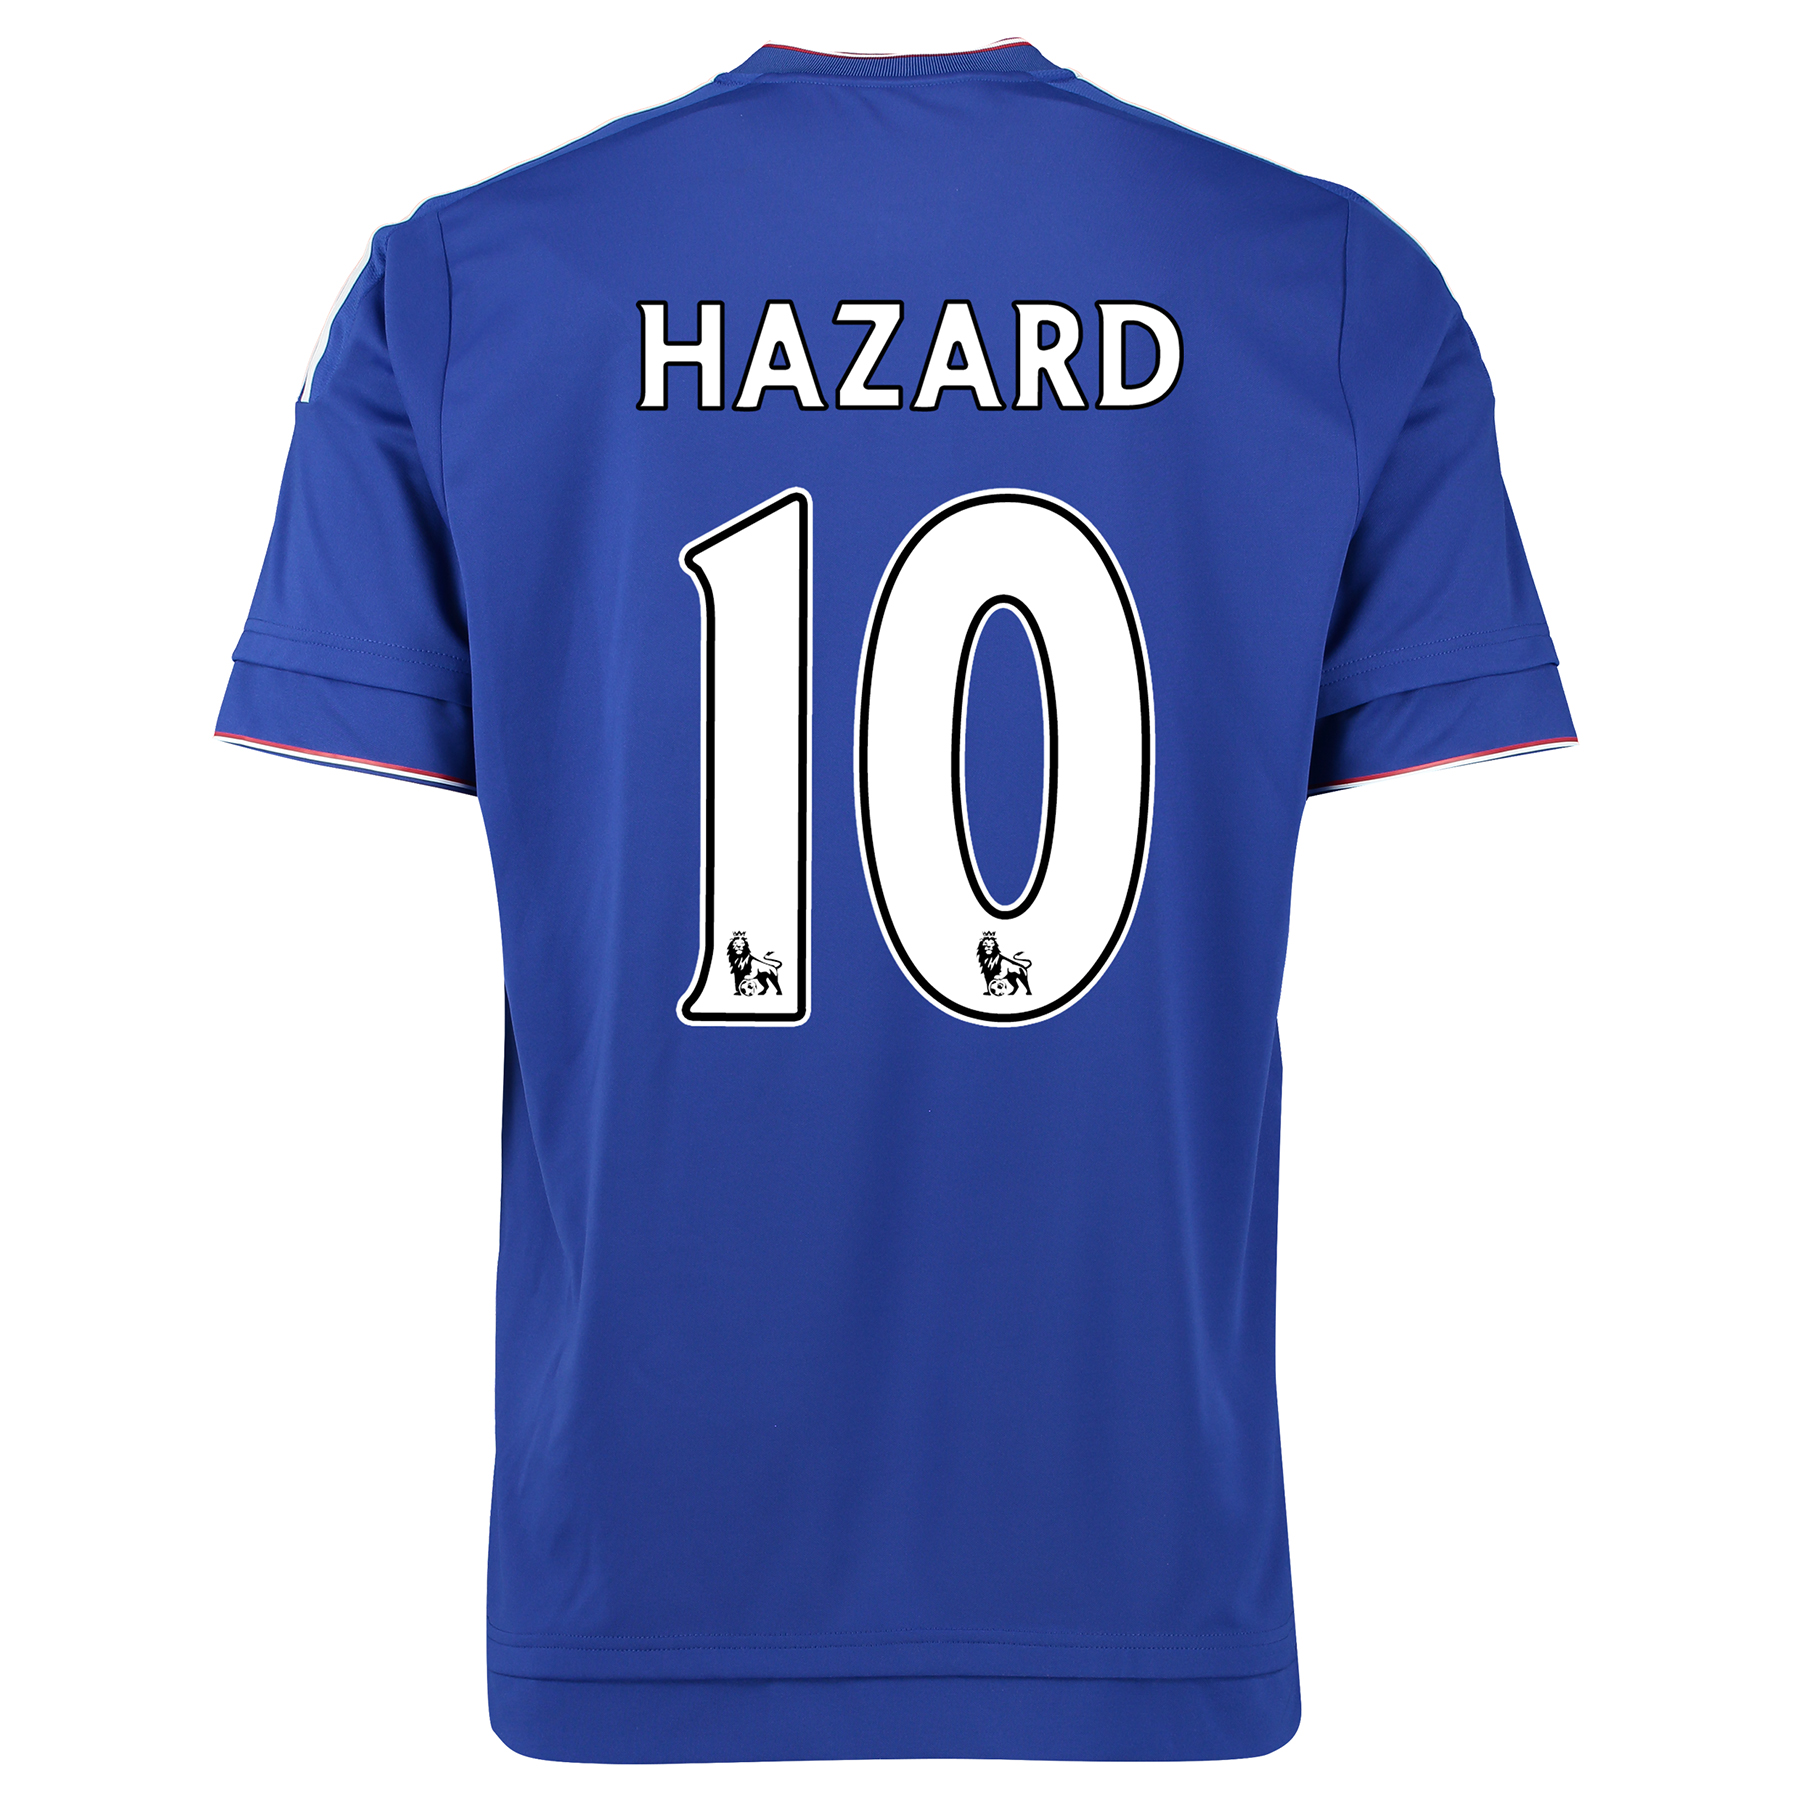 with Hazard 10 printing